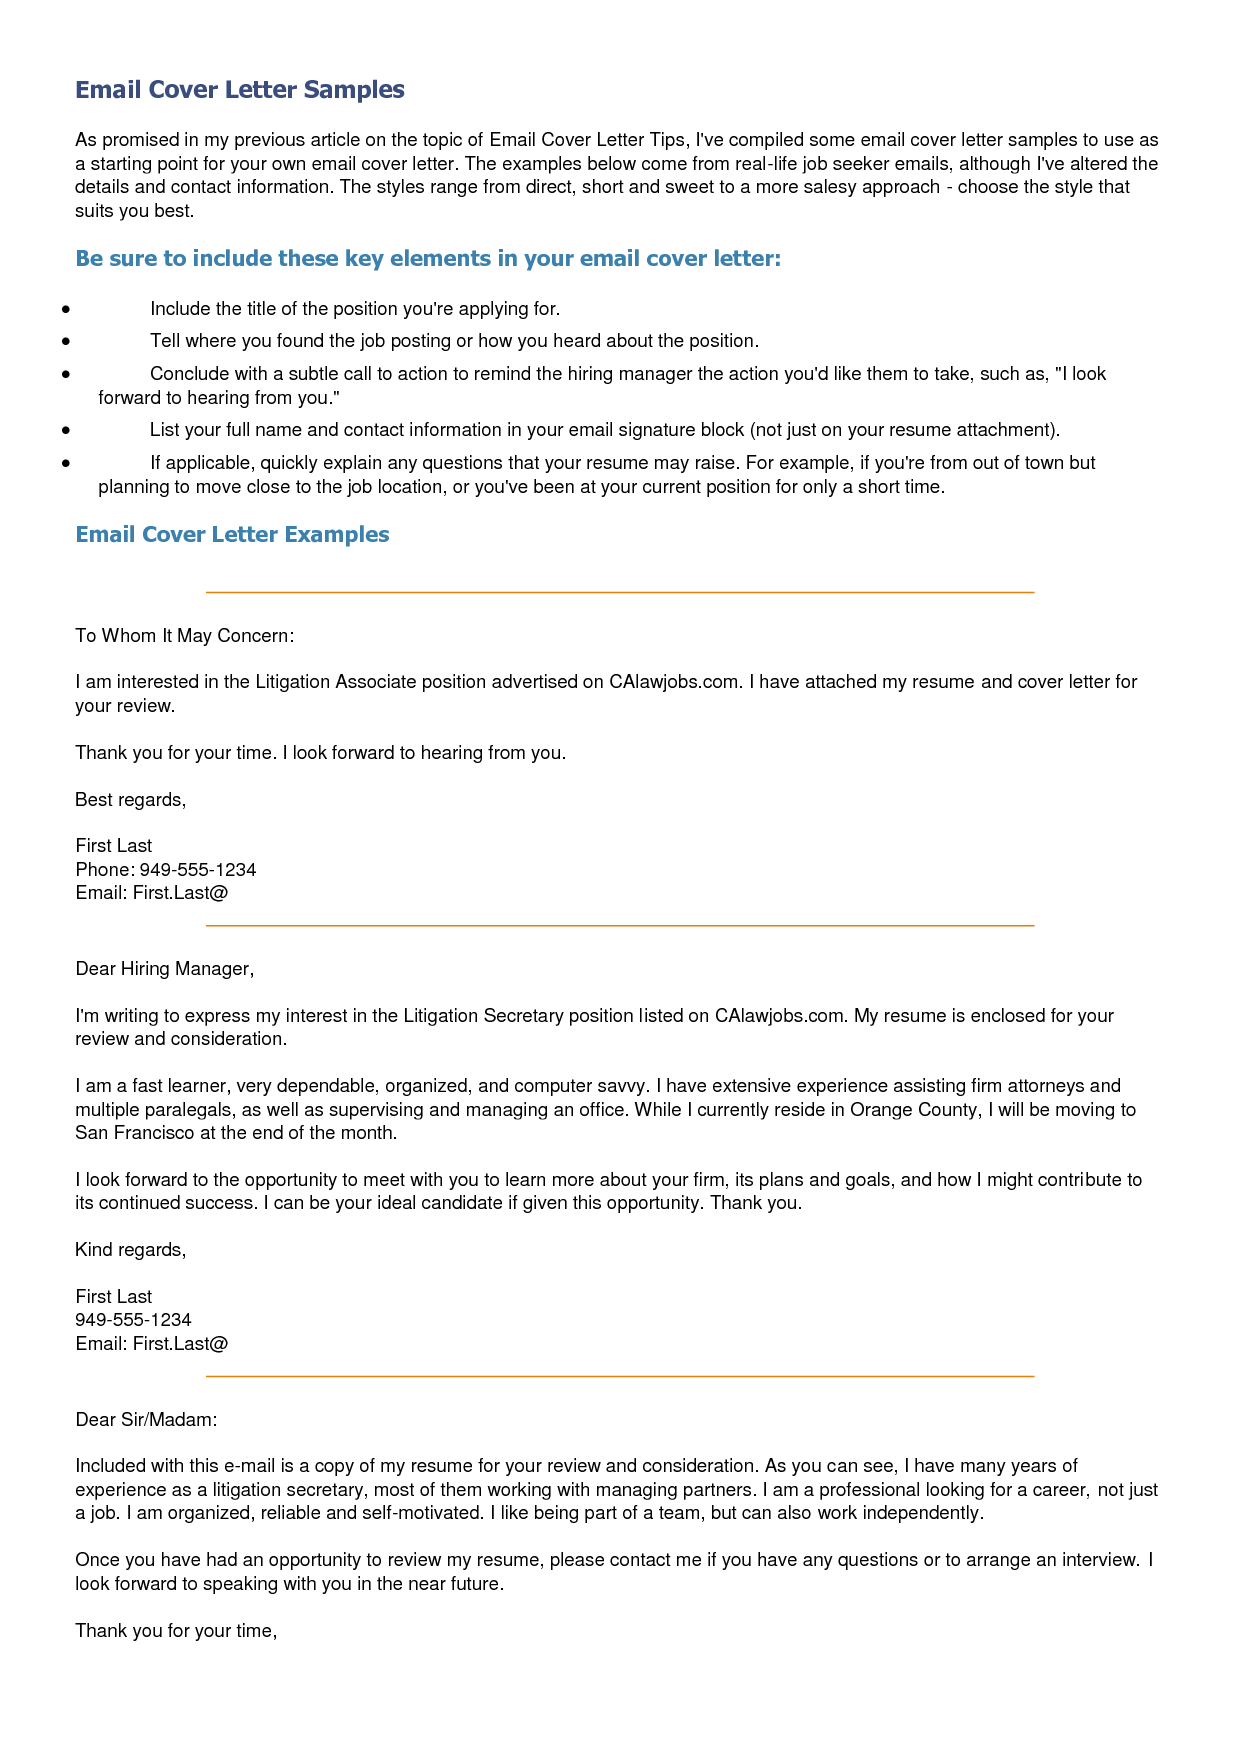 Email Cover Letter Sample Samplesg Business Via Certified Mail Resume  Resume Email Cover Letter